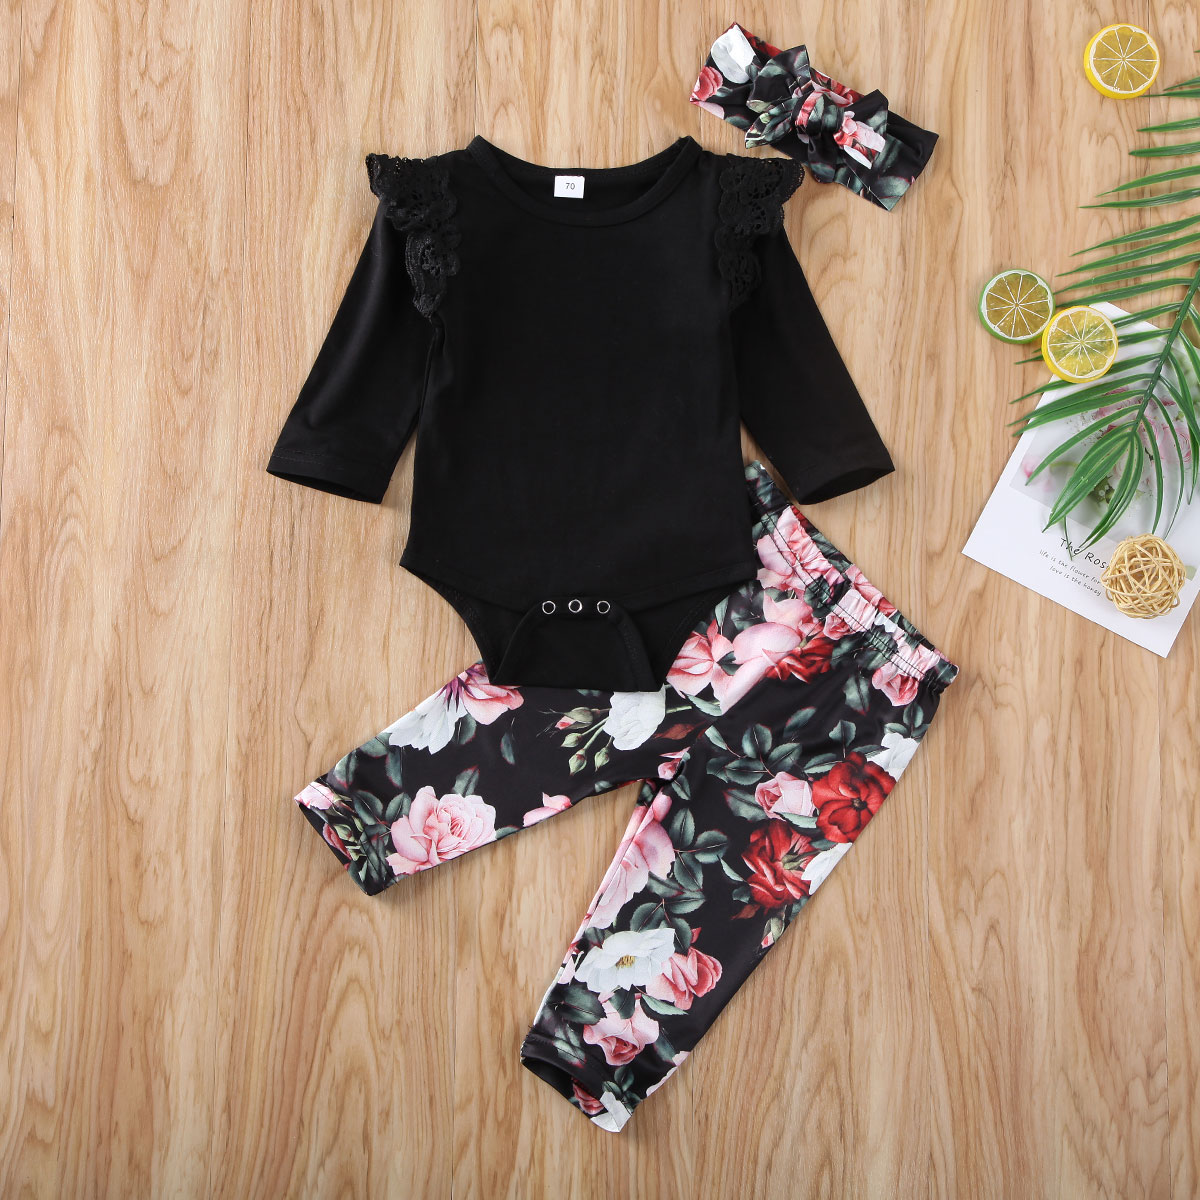 Emmababy Newborn Baby Girl Clothes Solid Color Lace Fly Sleeve Romper Tops Flower Print Long Pants Headband 3Pcs Outfits Set